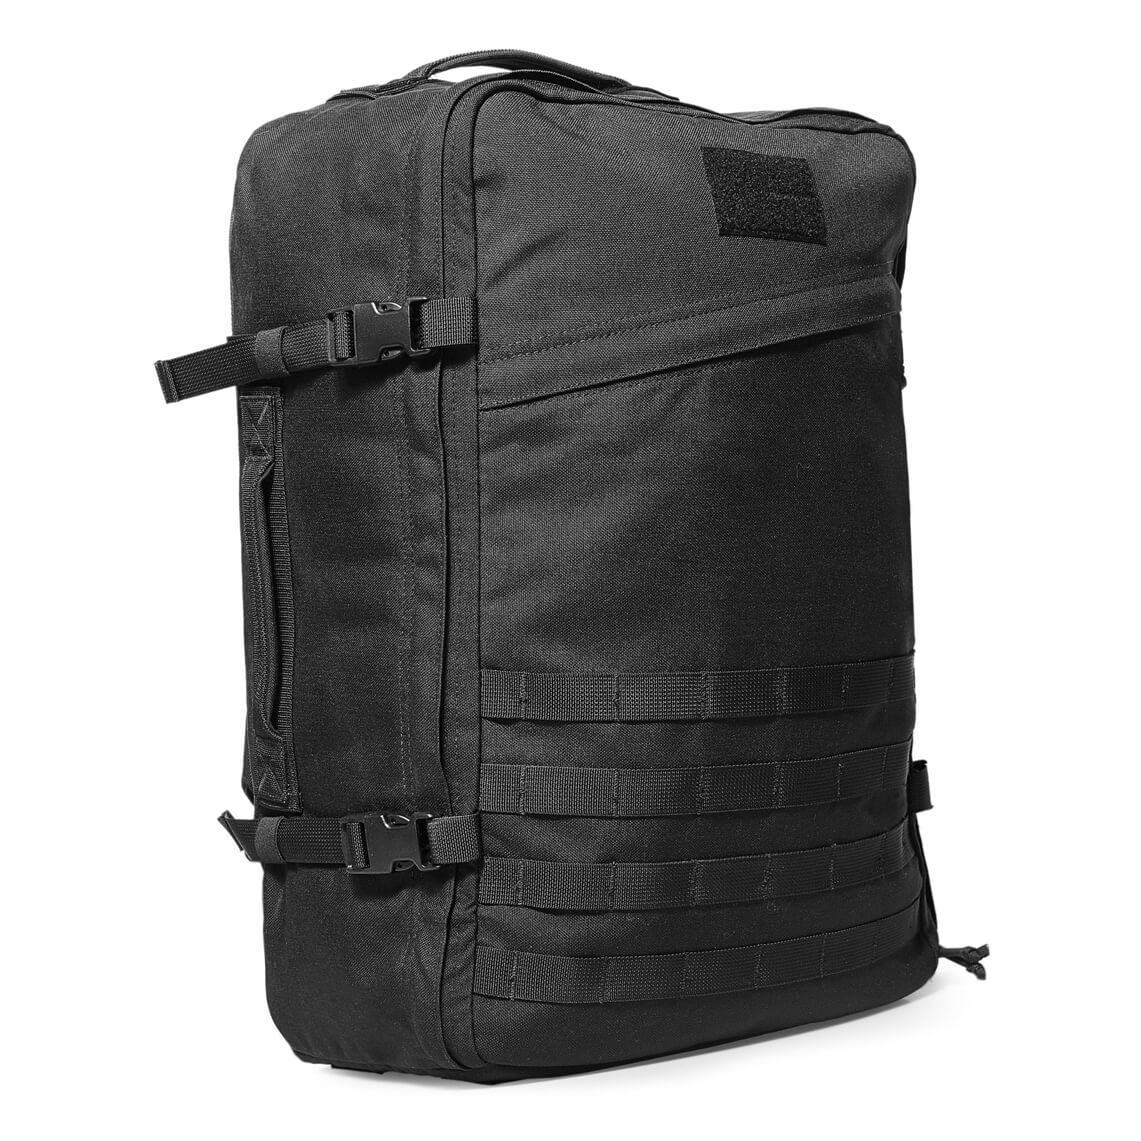 GoRuck - GR3 - USA Tactical Backpack